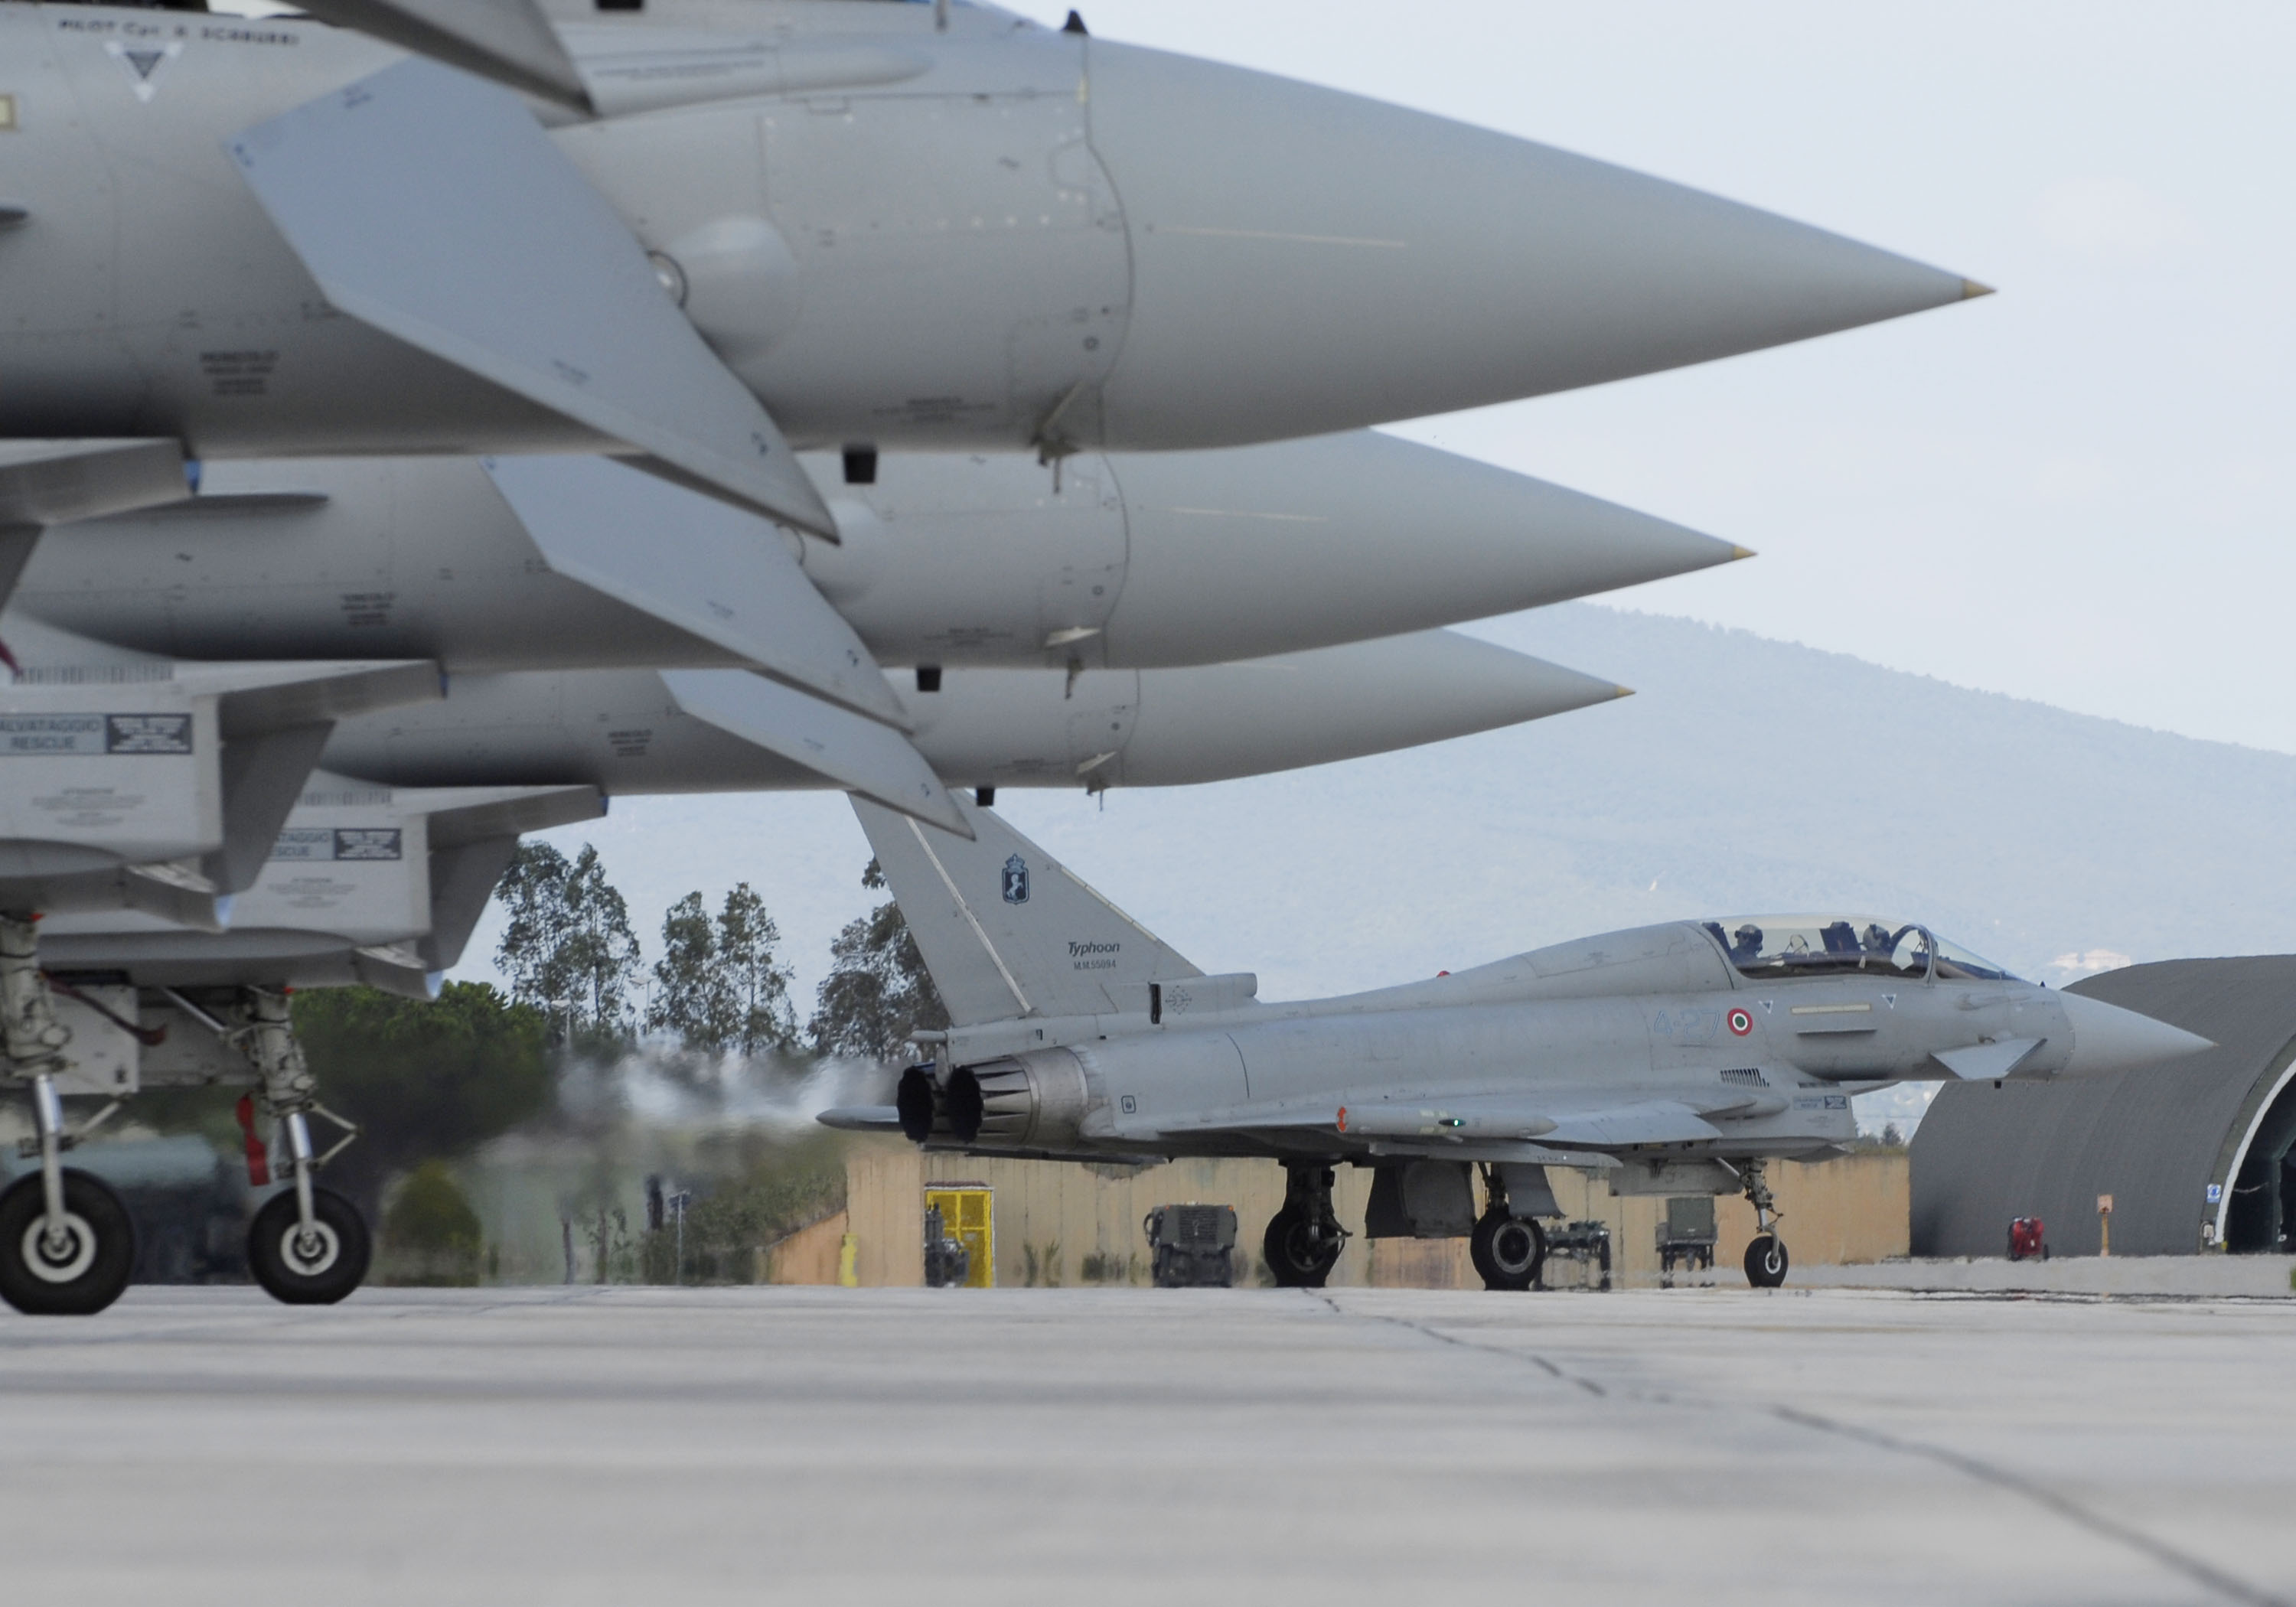 ITAF ground operations  of Eurofighter Typhoon at Grosseto, Italy. all 3 Italian Air Force Squadrons took part in the fly past. no 9, 12 and 20 Squadrons from Grosseto and Gioia del Colle.